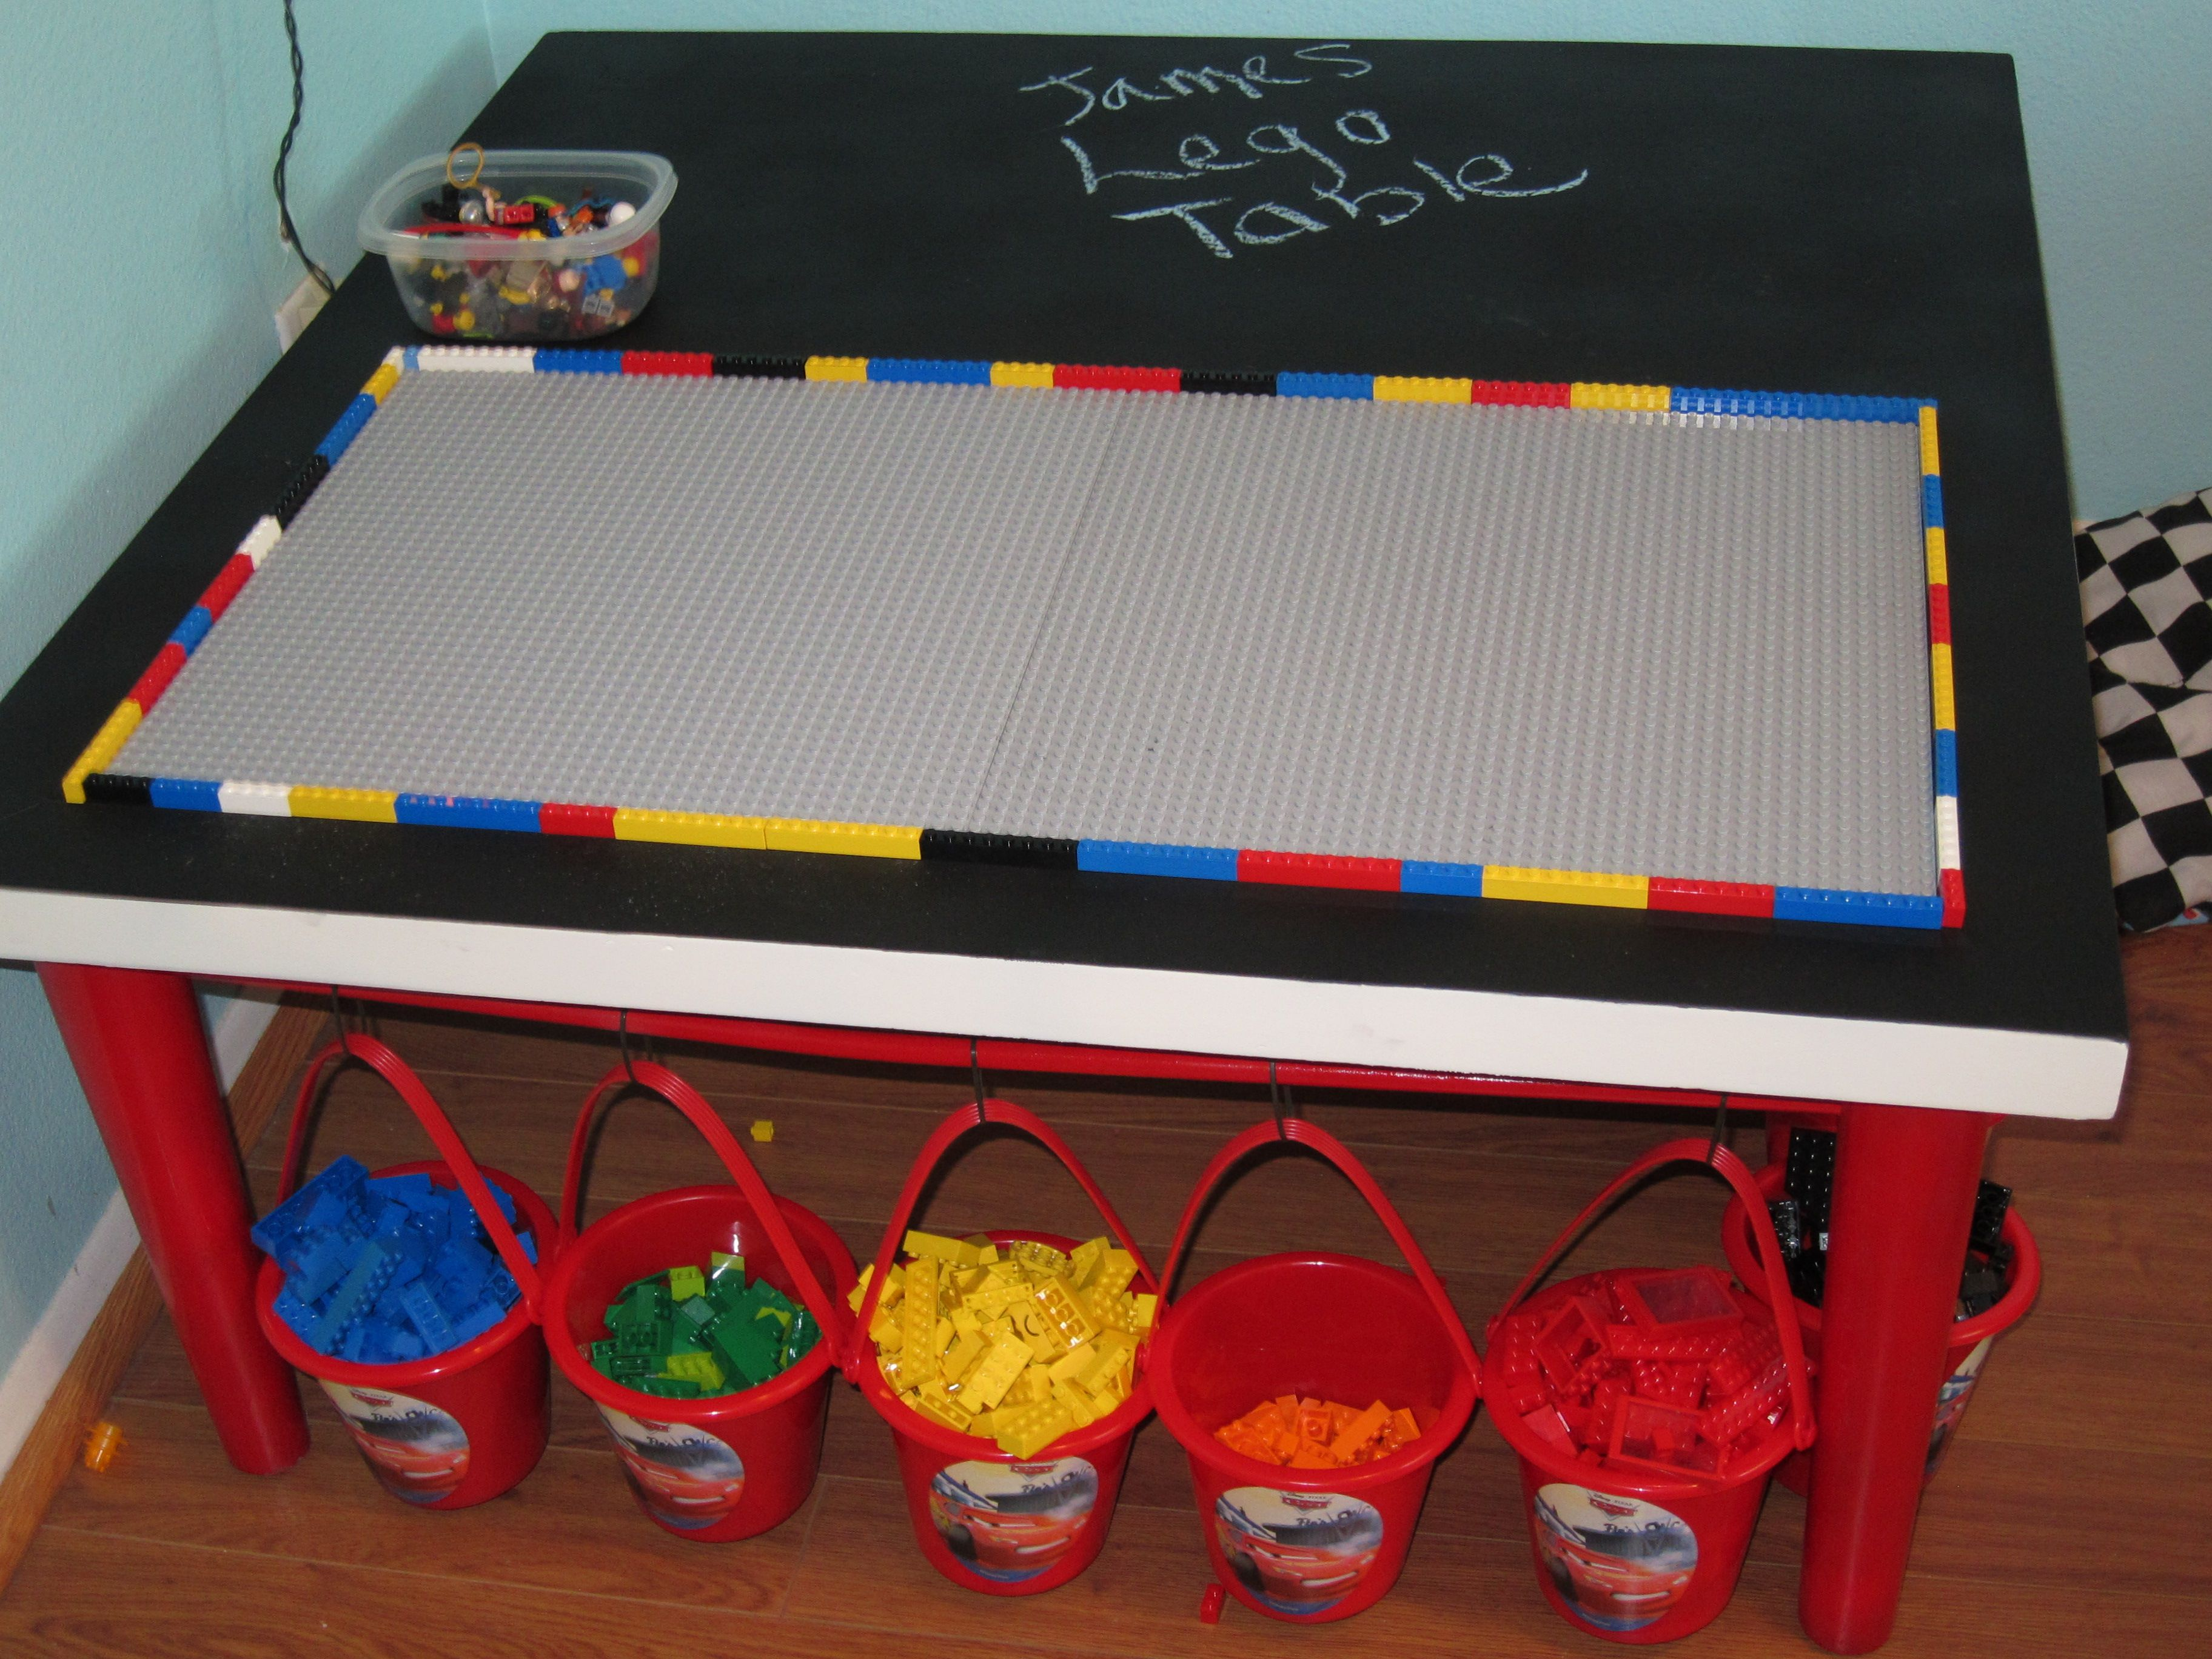 LEGO Storage chalk board table top